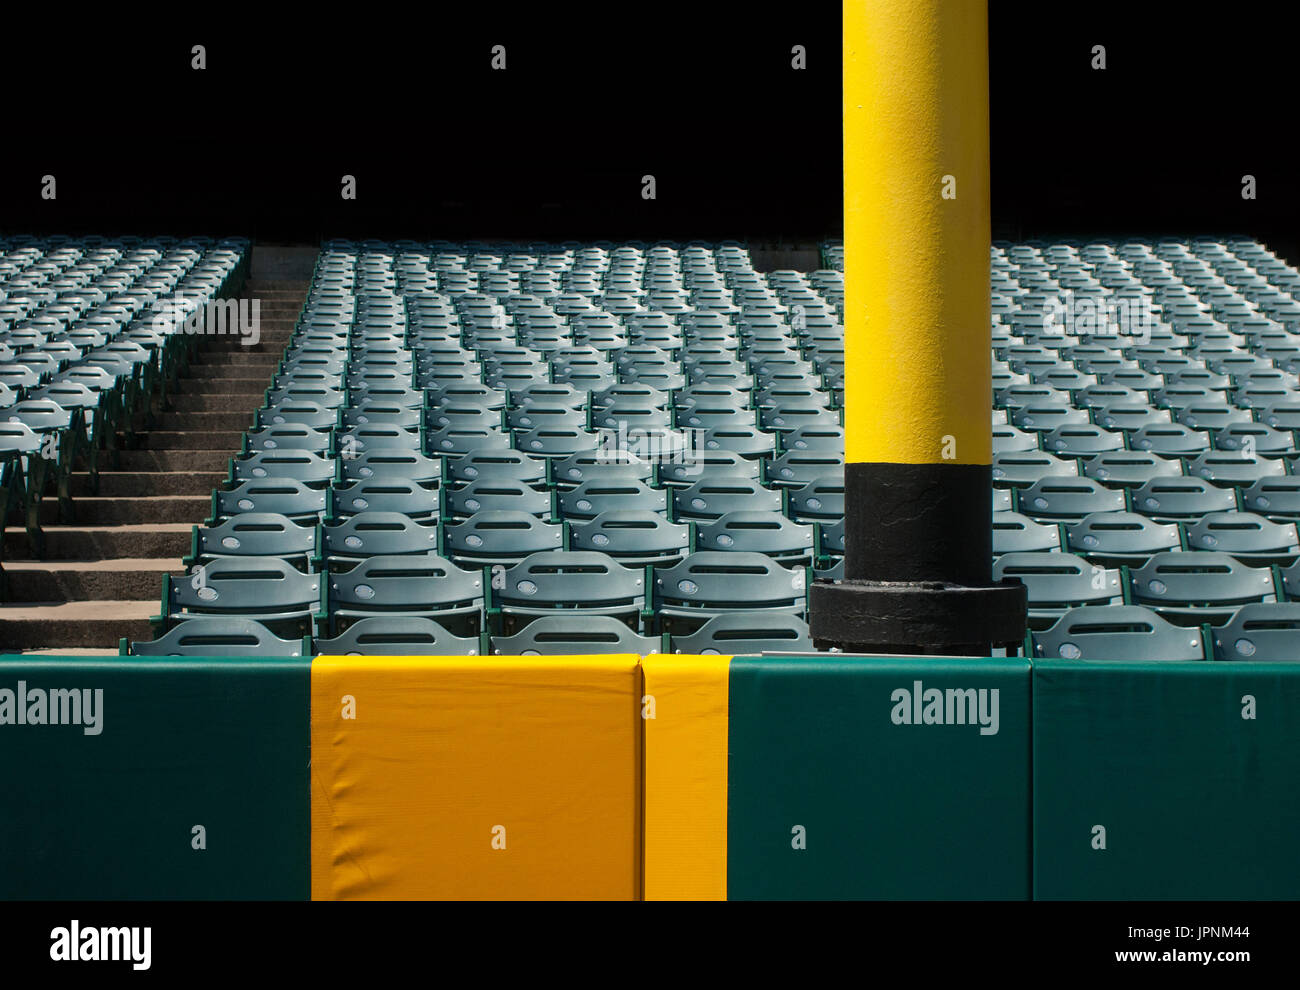 Baseball foul pole with stadium seats. - Stock Image